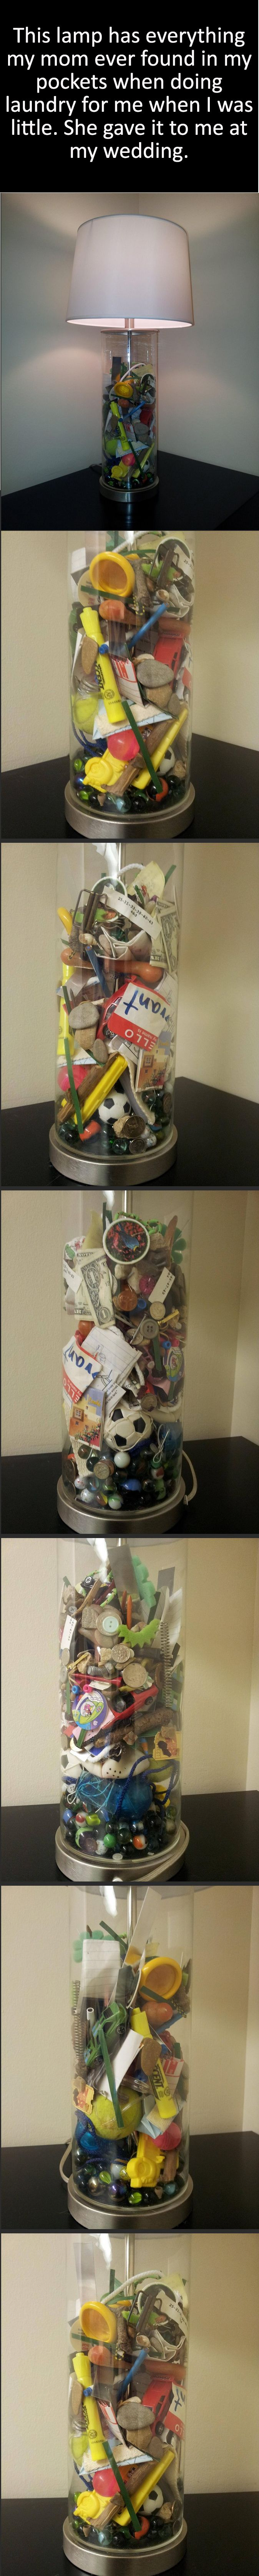 A mother saved all the things she found on his son pockets when doing the laundry. She gave him this lamp with all things found for his wedding.